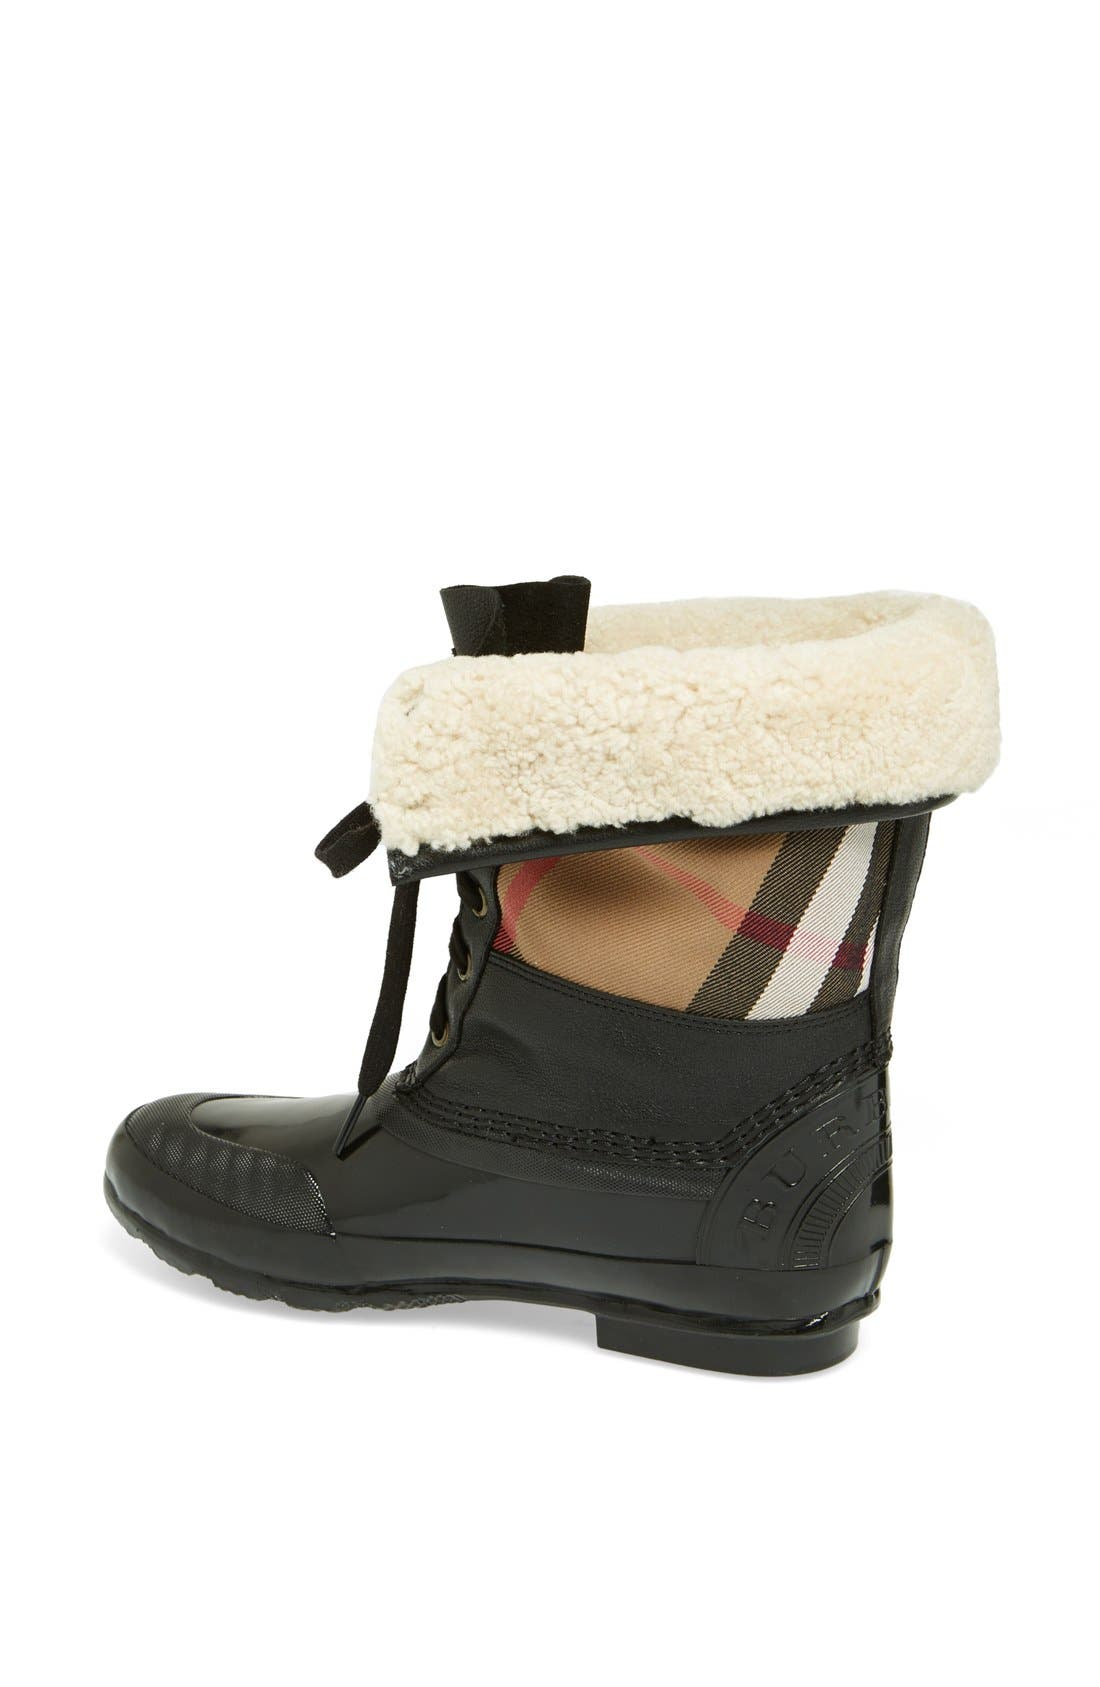 Alternate Image 2  - Burberry 'Danning' Waterproof Bootie